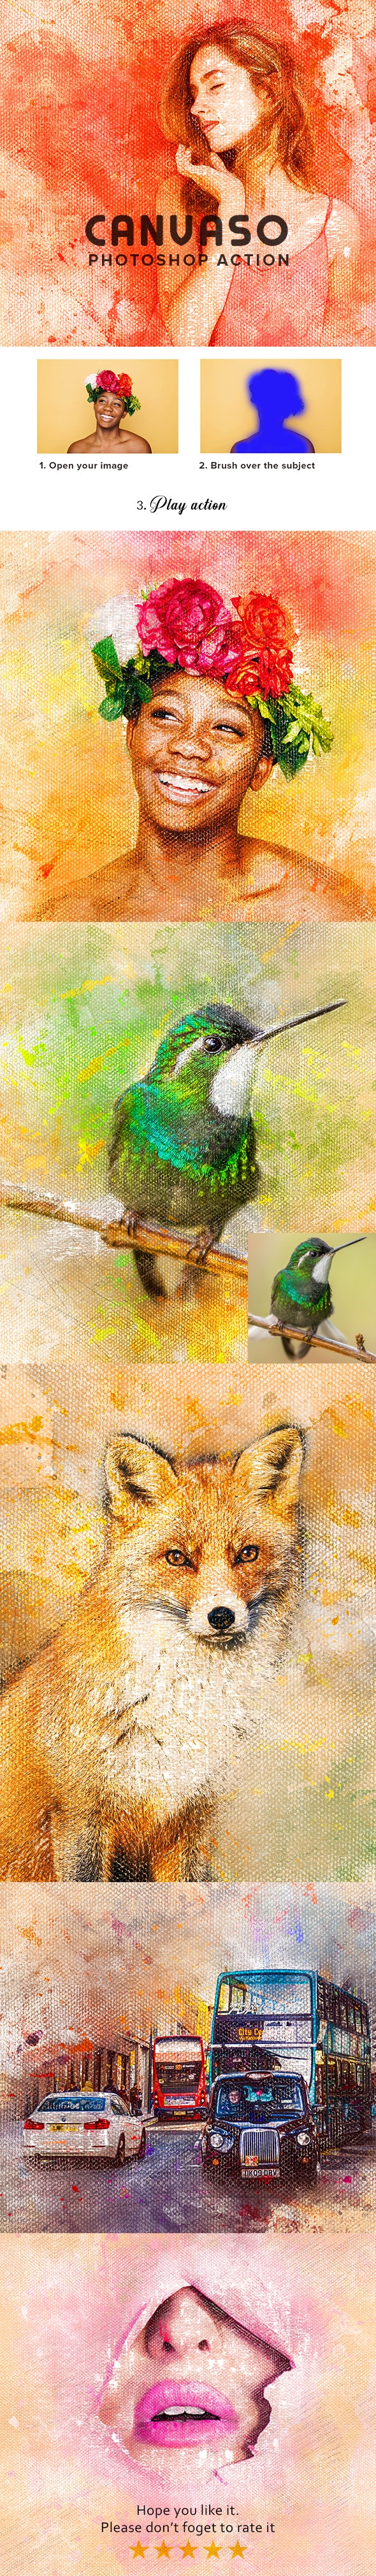 Canvaso Photoshop Action - Photo Effects Actions